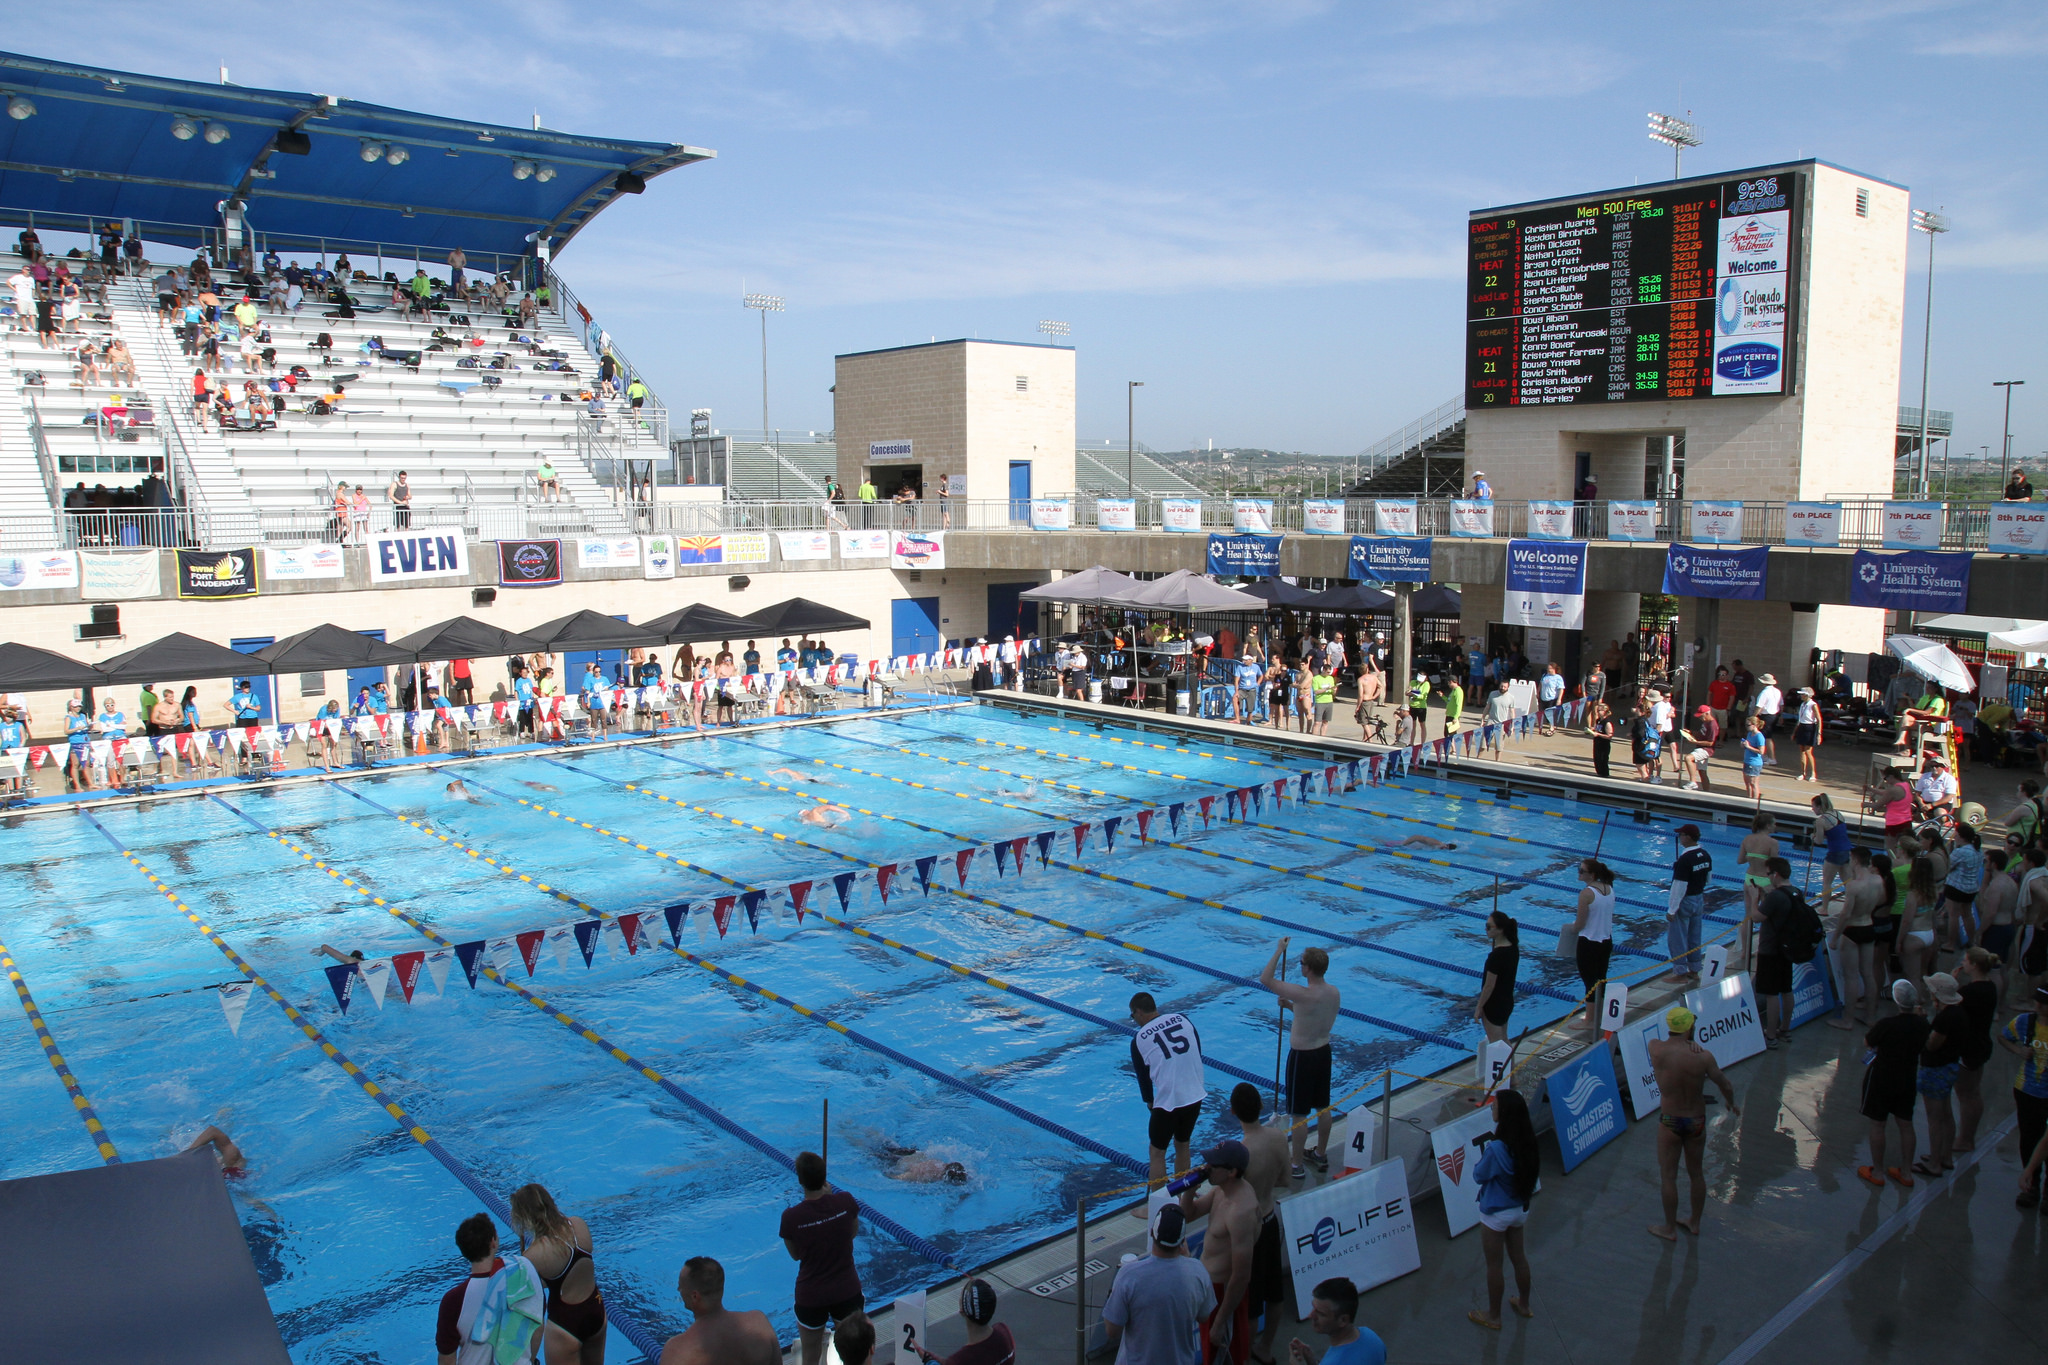 san antonio texas a swimming hub for the elite the novice